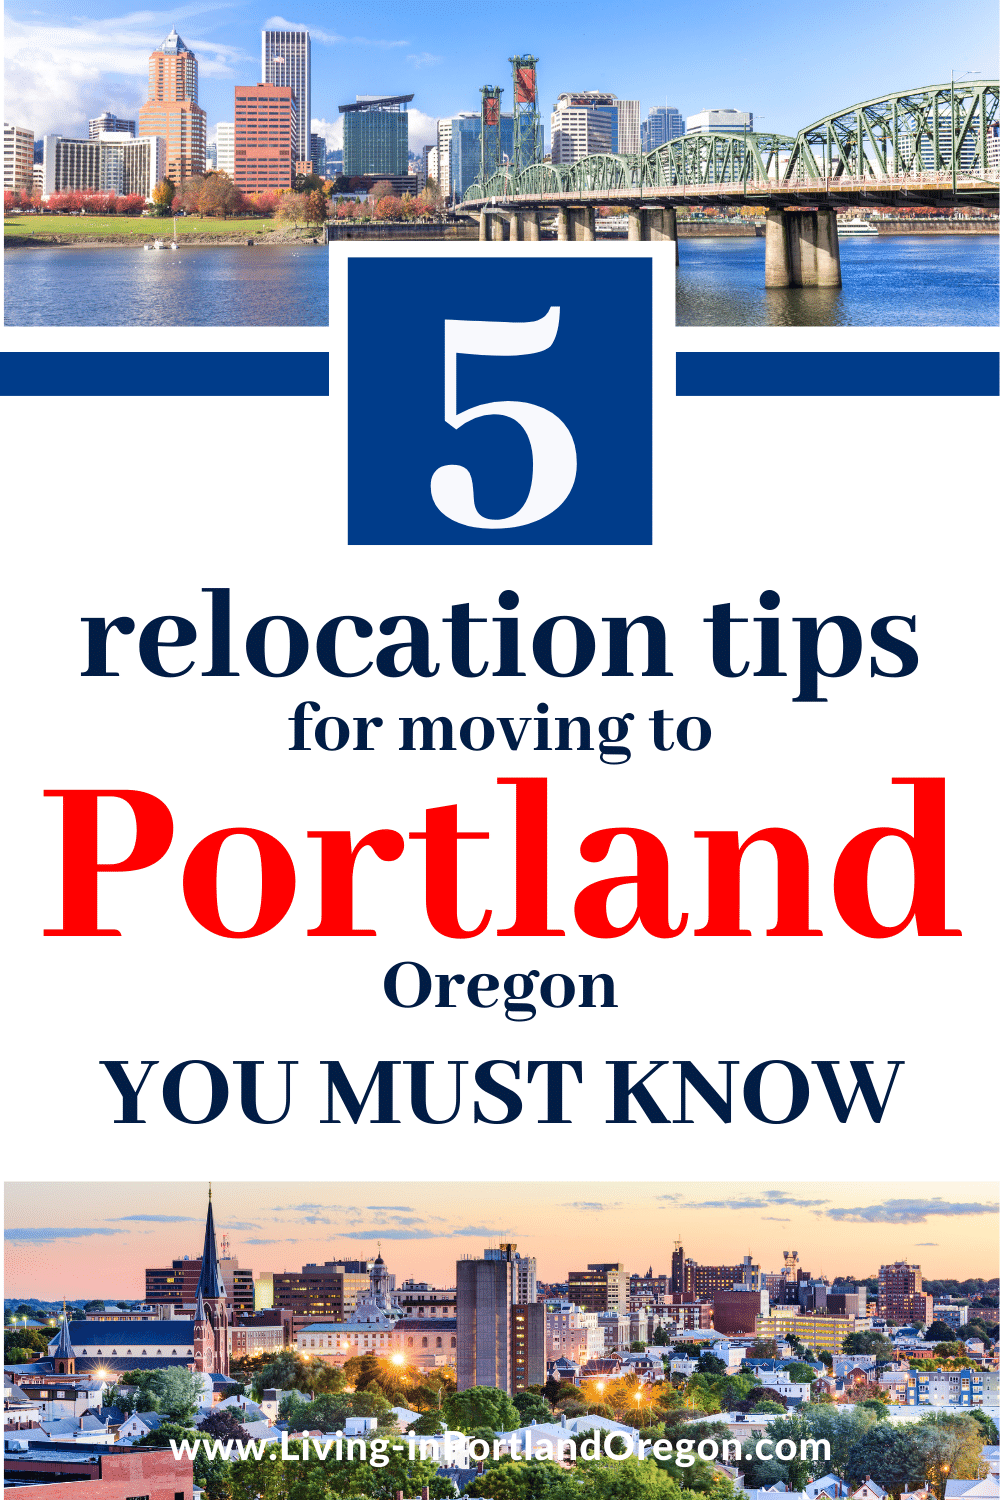 Top 5 Relocation Tips for Moving to Portland Oregon pins (2)